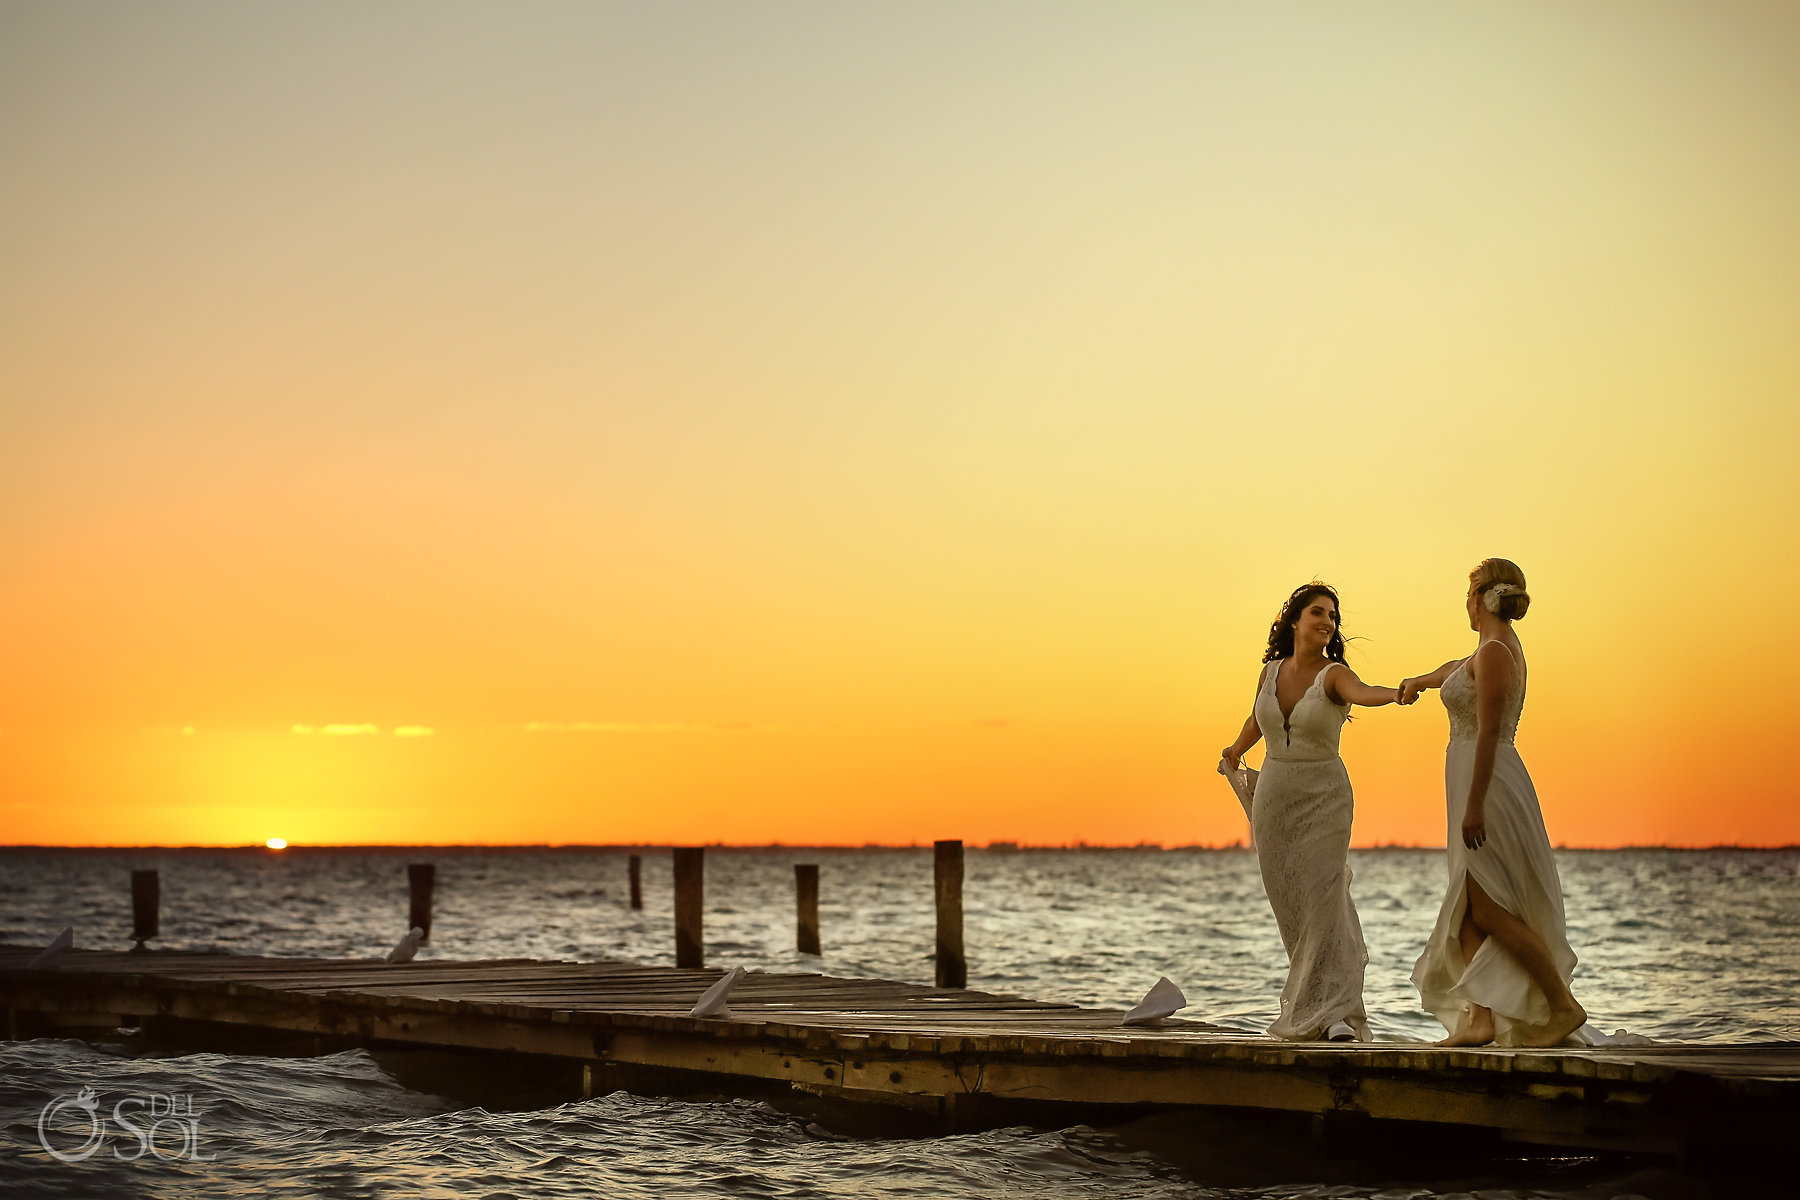 Lesbian brides over a pier photo session Isla Mujeres queer wedding Zama Private Beach